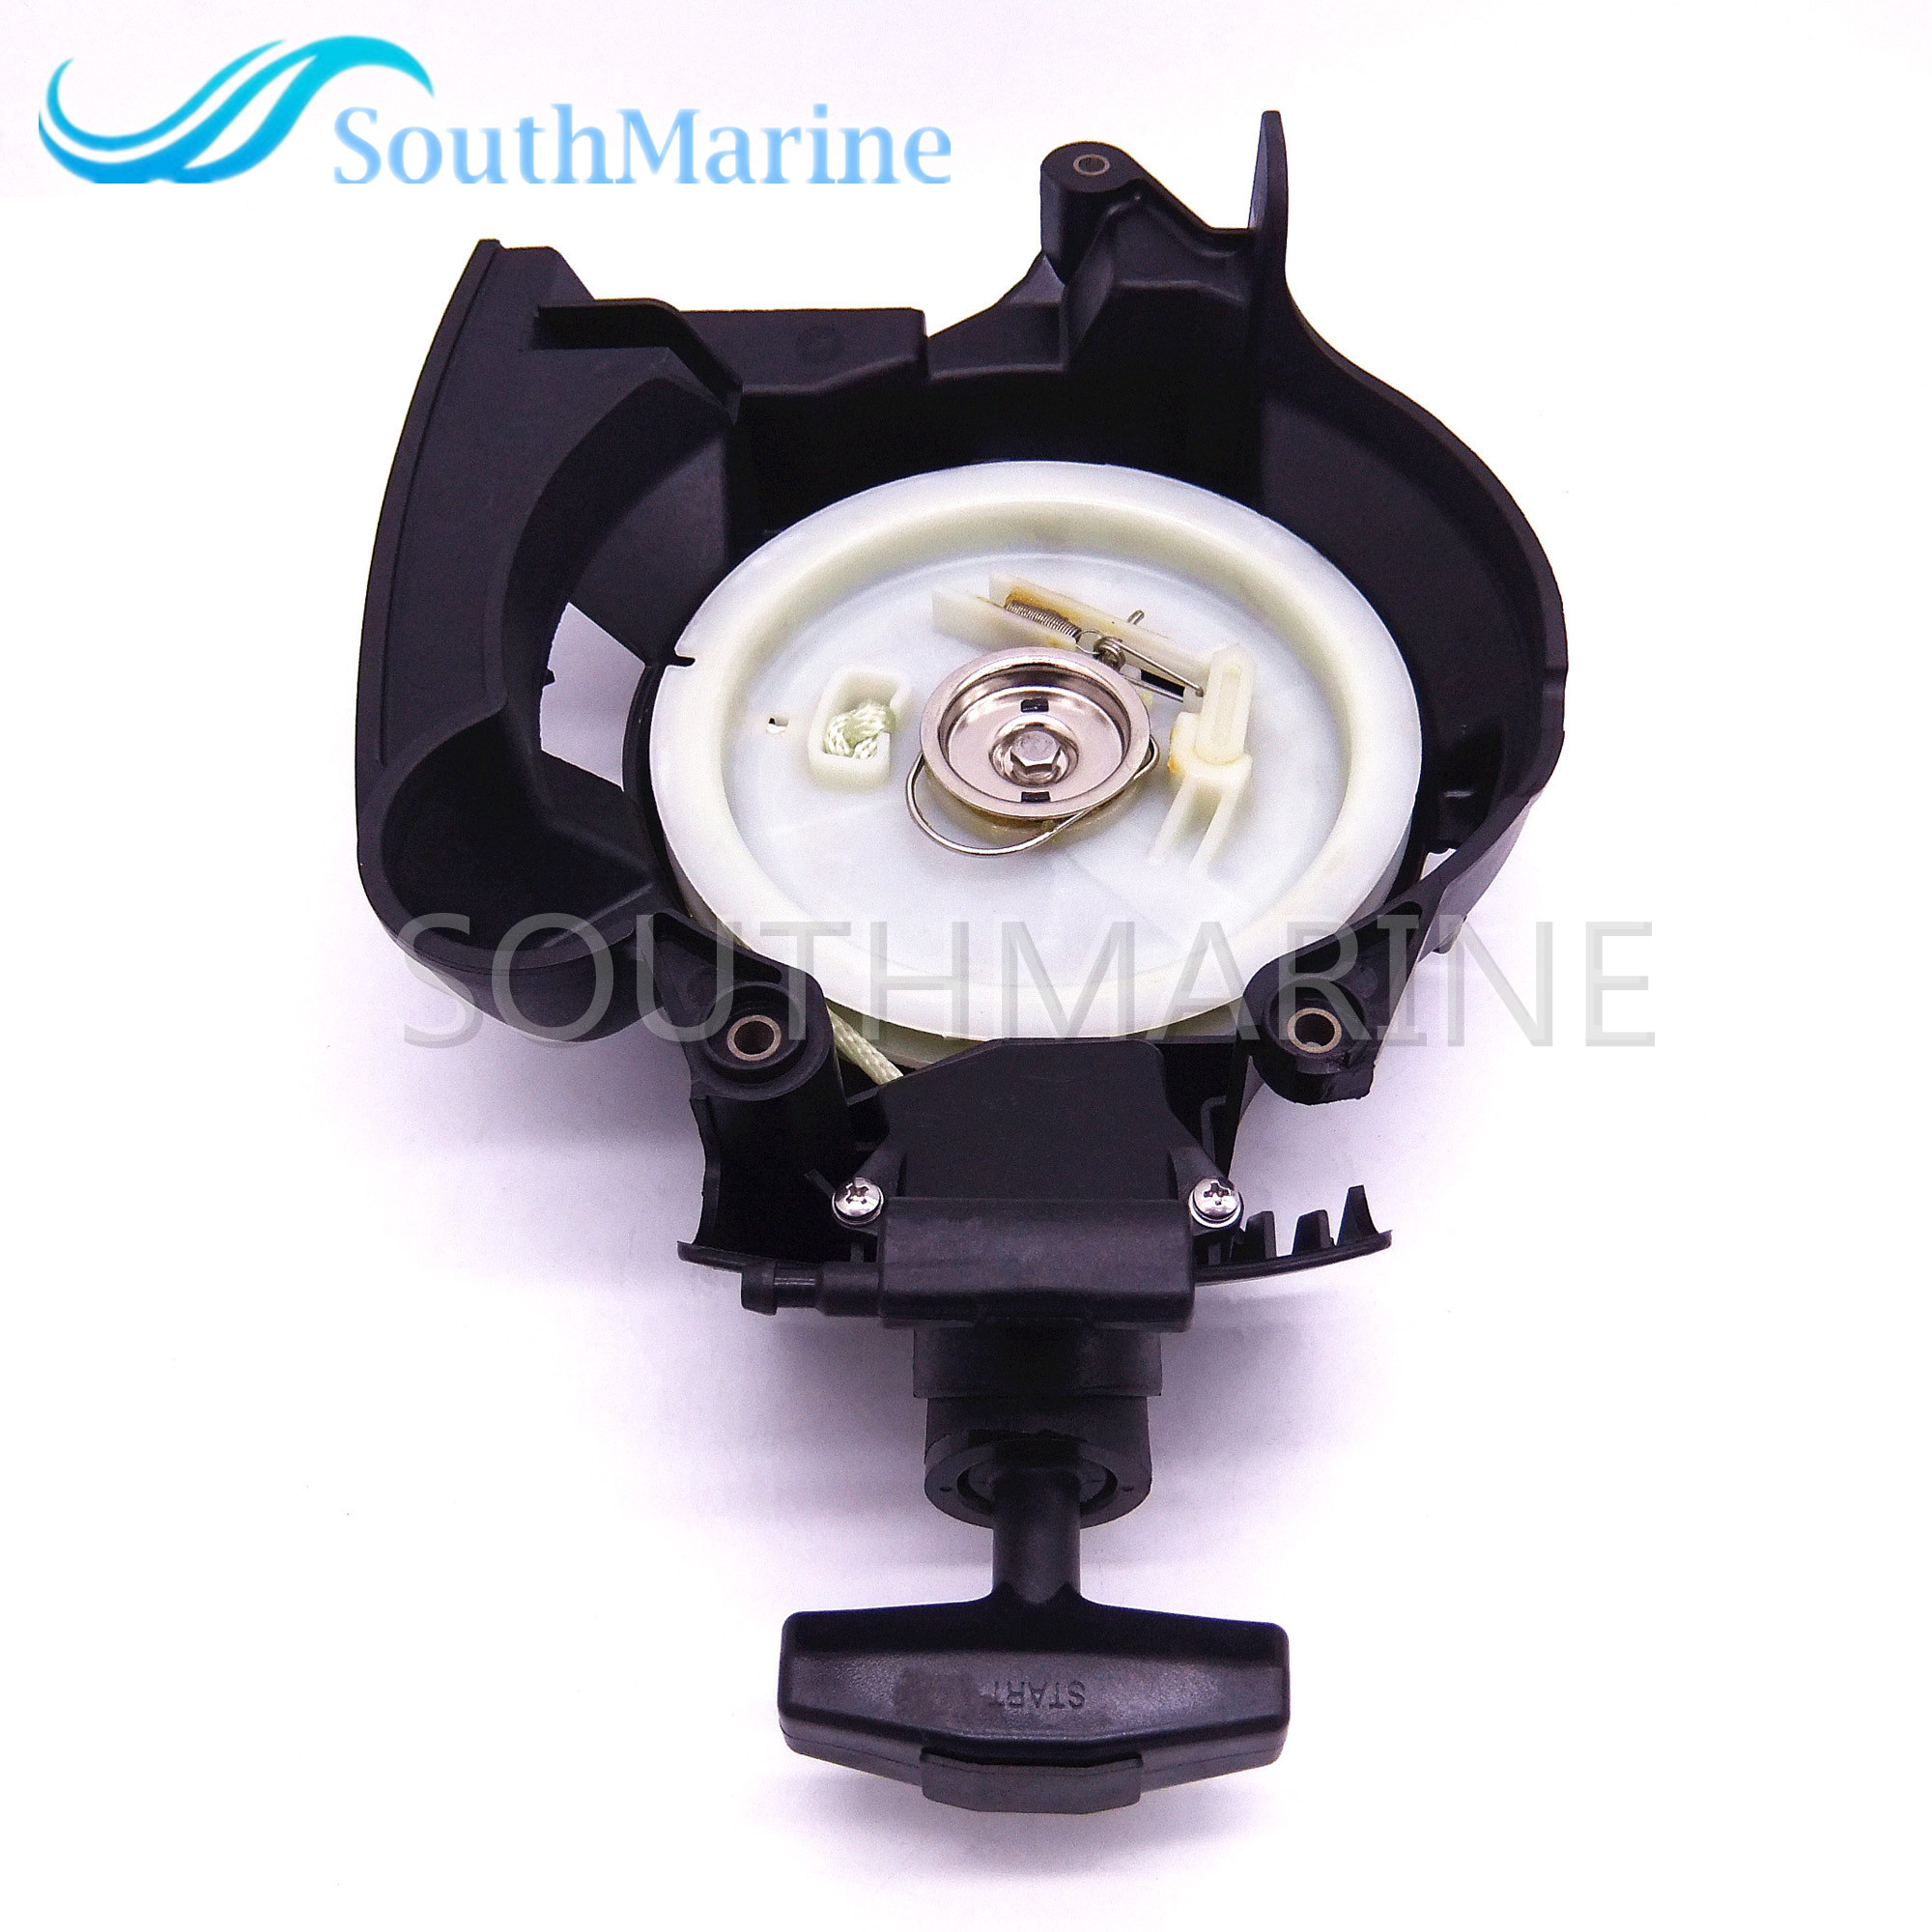 Starter Assy F20-05070000 for Parsun HDX F15A F20A 4-stroke Outboard Motors